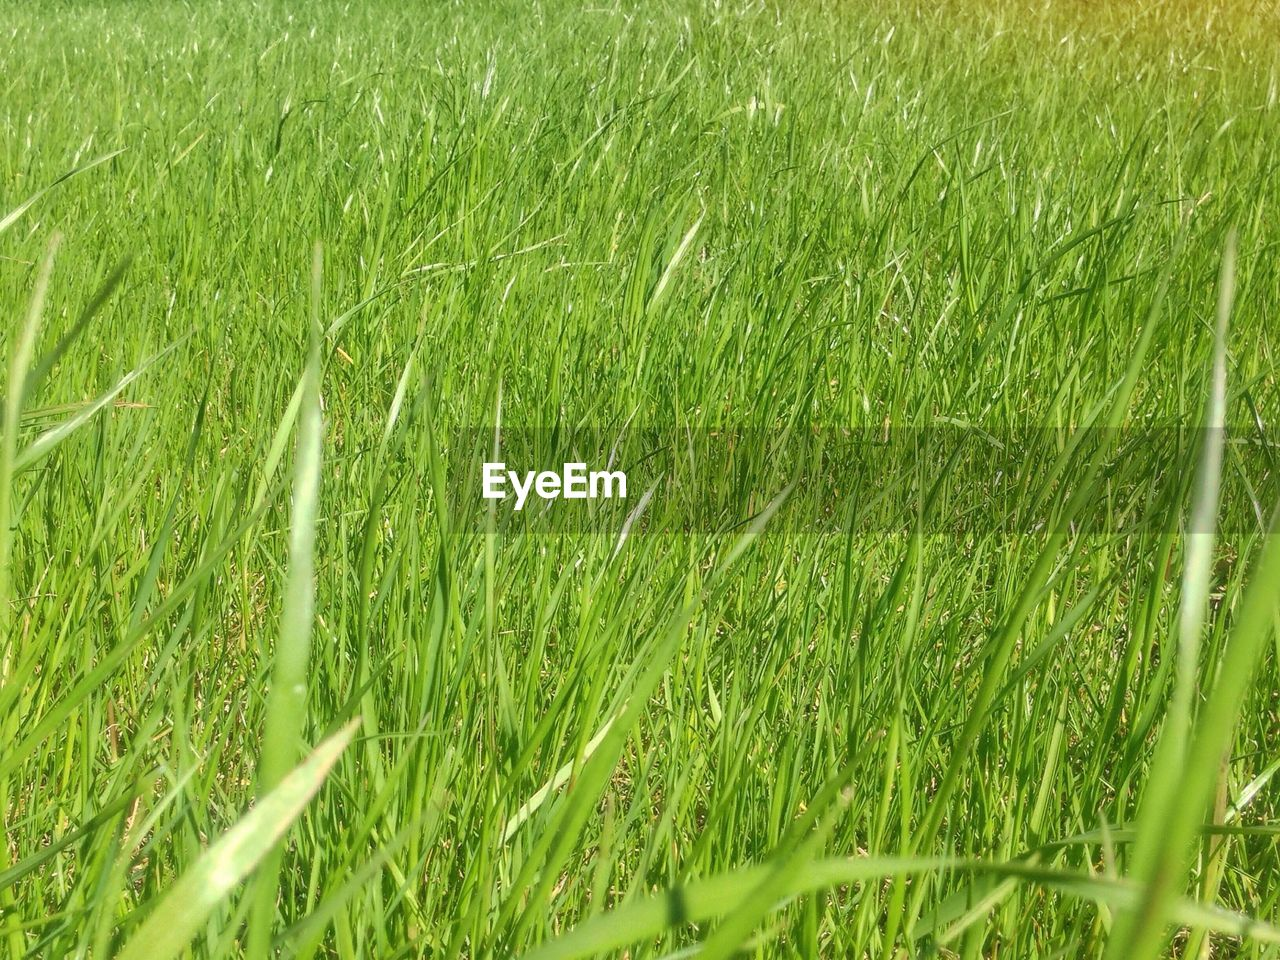 grass, field, growth, green color, nature, no people, day, outdoors, agriculture, beauty in nature, backgrounds, plant, wheat